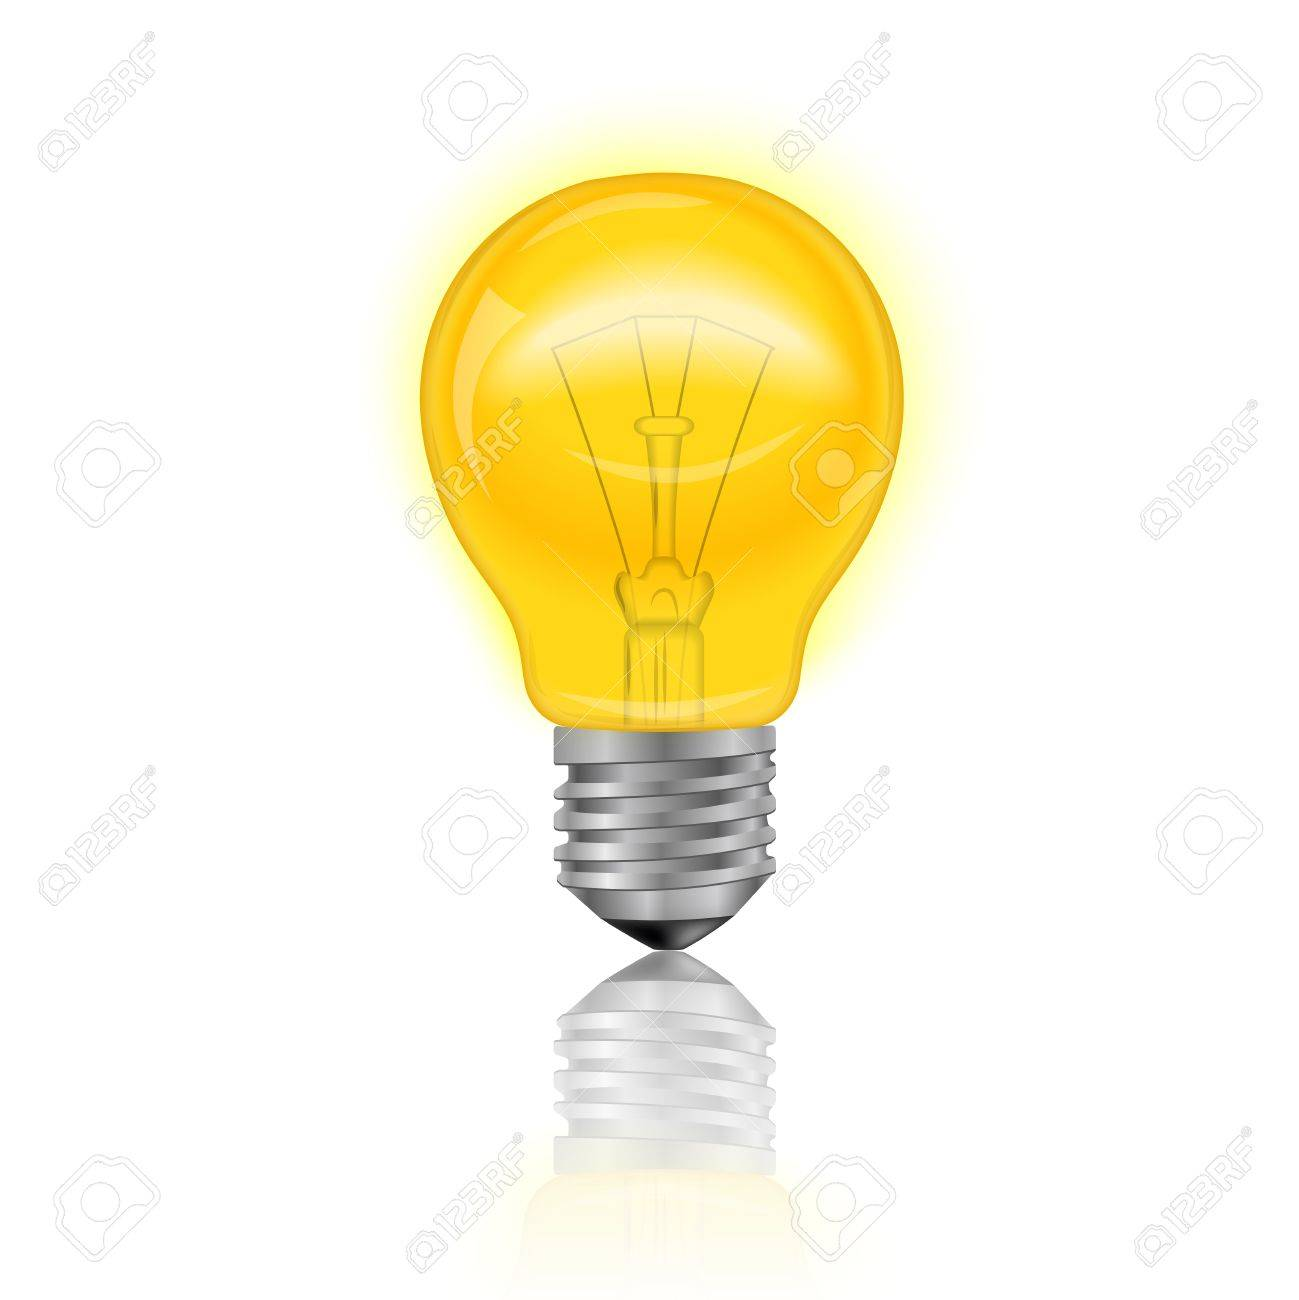 Good Illuminated Electric Light Bulb Realistic Isolated On White Background  Vector Illustration Stock Vector   35431651 Good Ideas